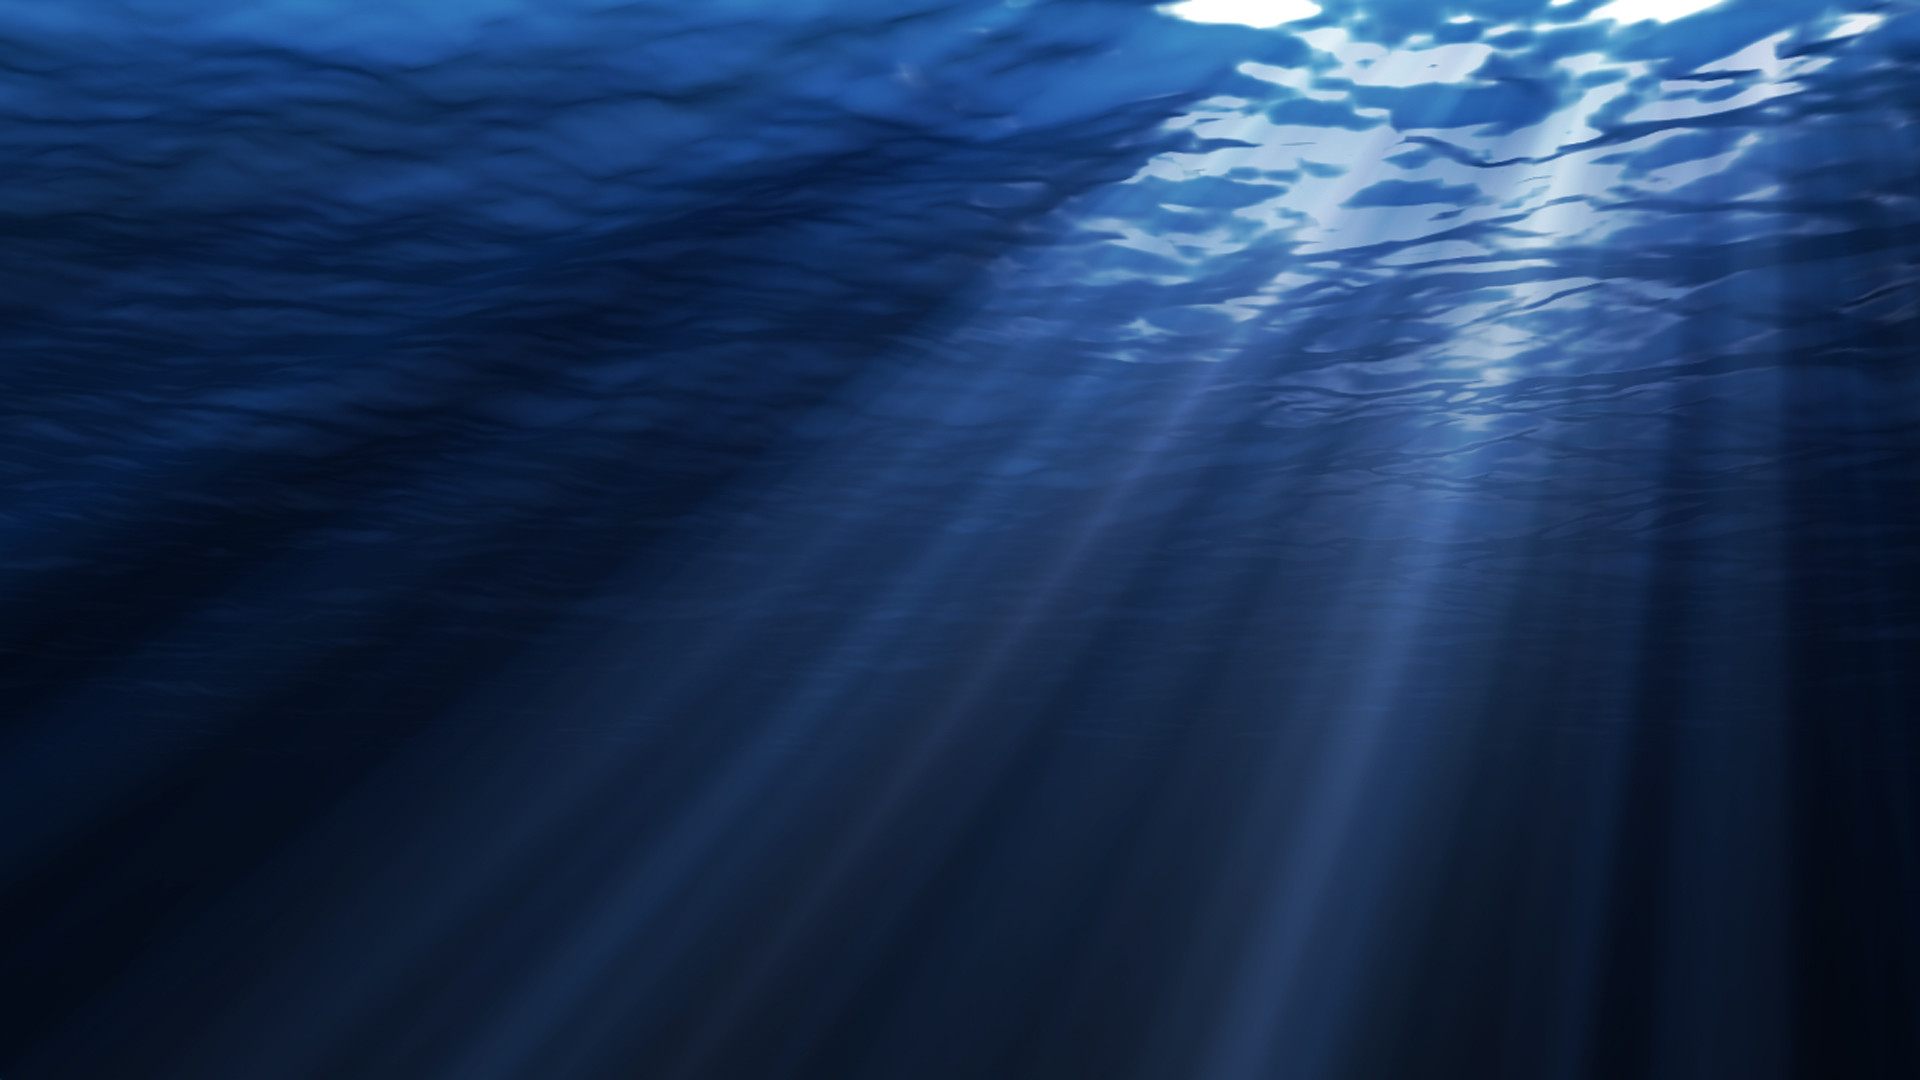 Res: 1920x1080, Desktop Free Download Underwater Backgrounds.